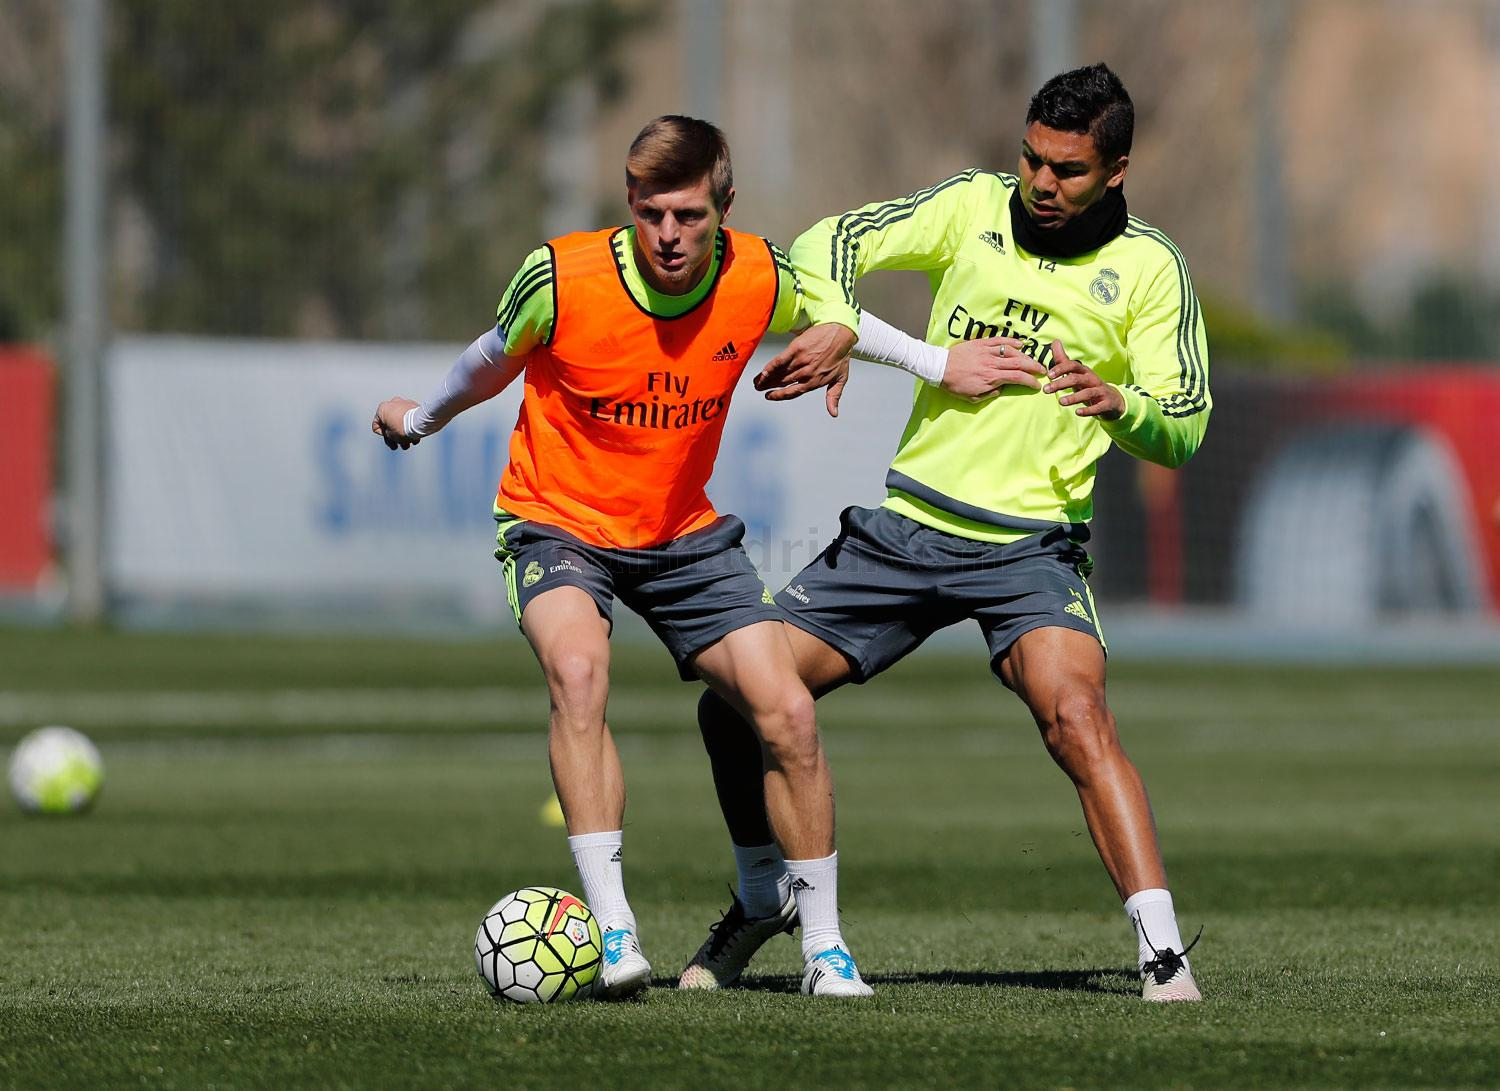 Real Madrid - Entrenamiento del Real Madrid - 08-04-2016